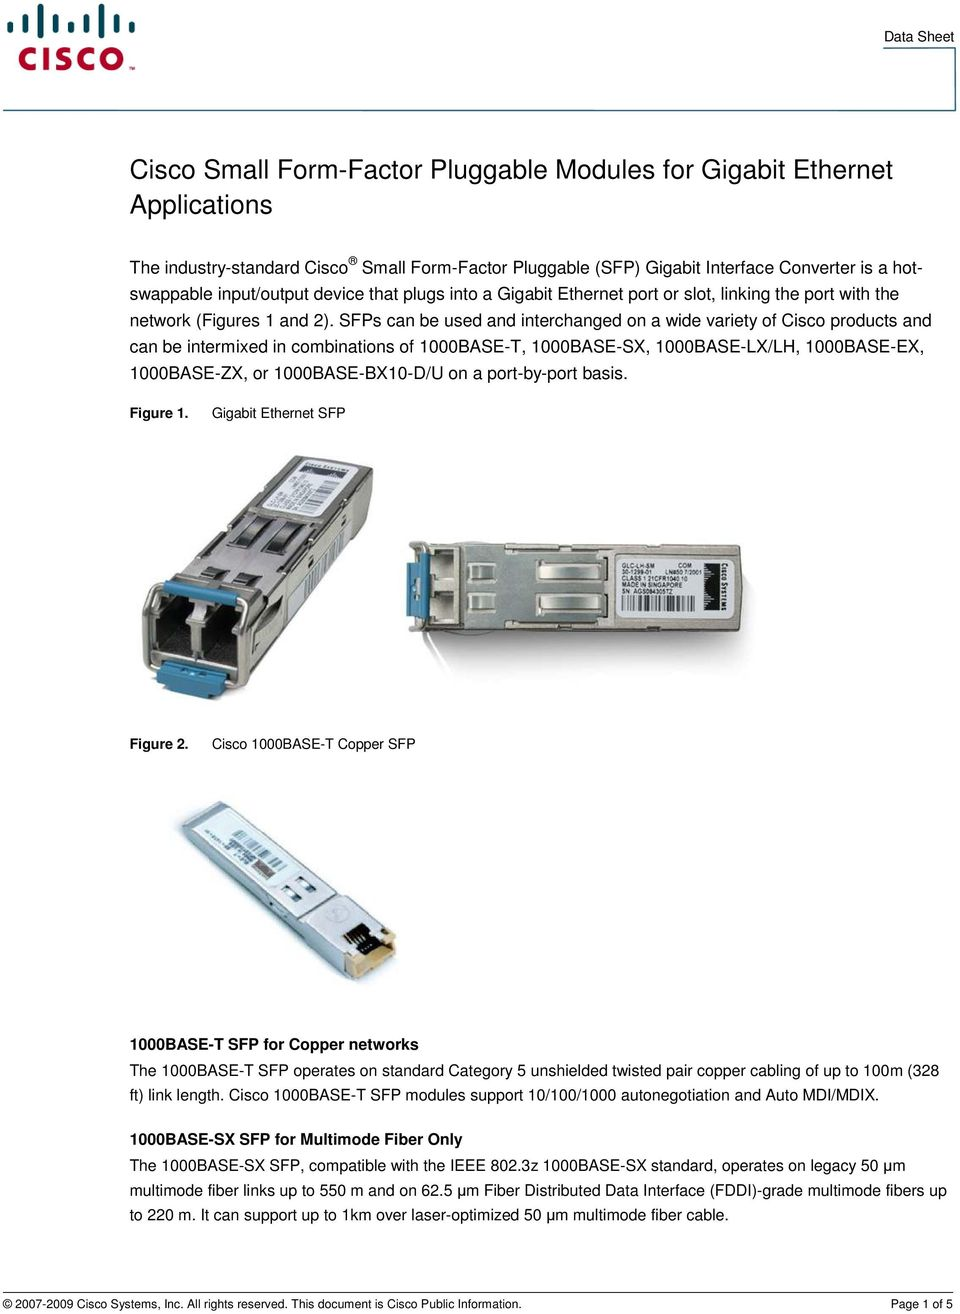 SFPs can be used and interchanged on a wide variety of Cisco products and can be intermixed in combinations of 1000BASE-T, 1000BASE-SX, 1000BASE-LX/LH, 1000BASE-EX, 1000BASE-ZX, or 1000BASE-BX10-D/U